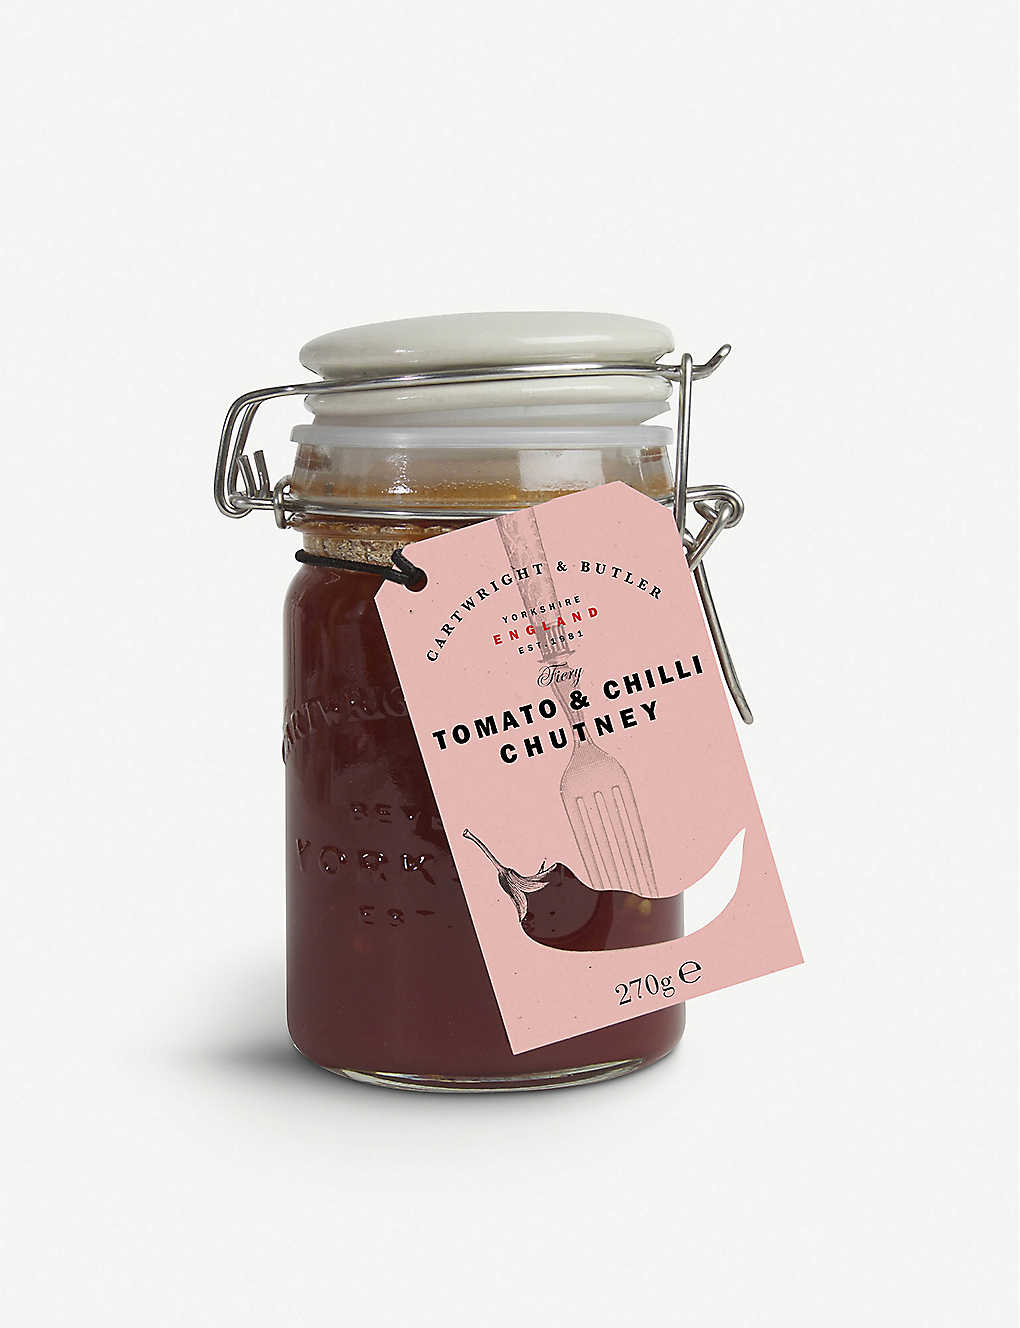 CARTWRIGHT & BUTLER: Tomato and chilli chutney 270g